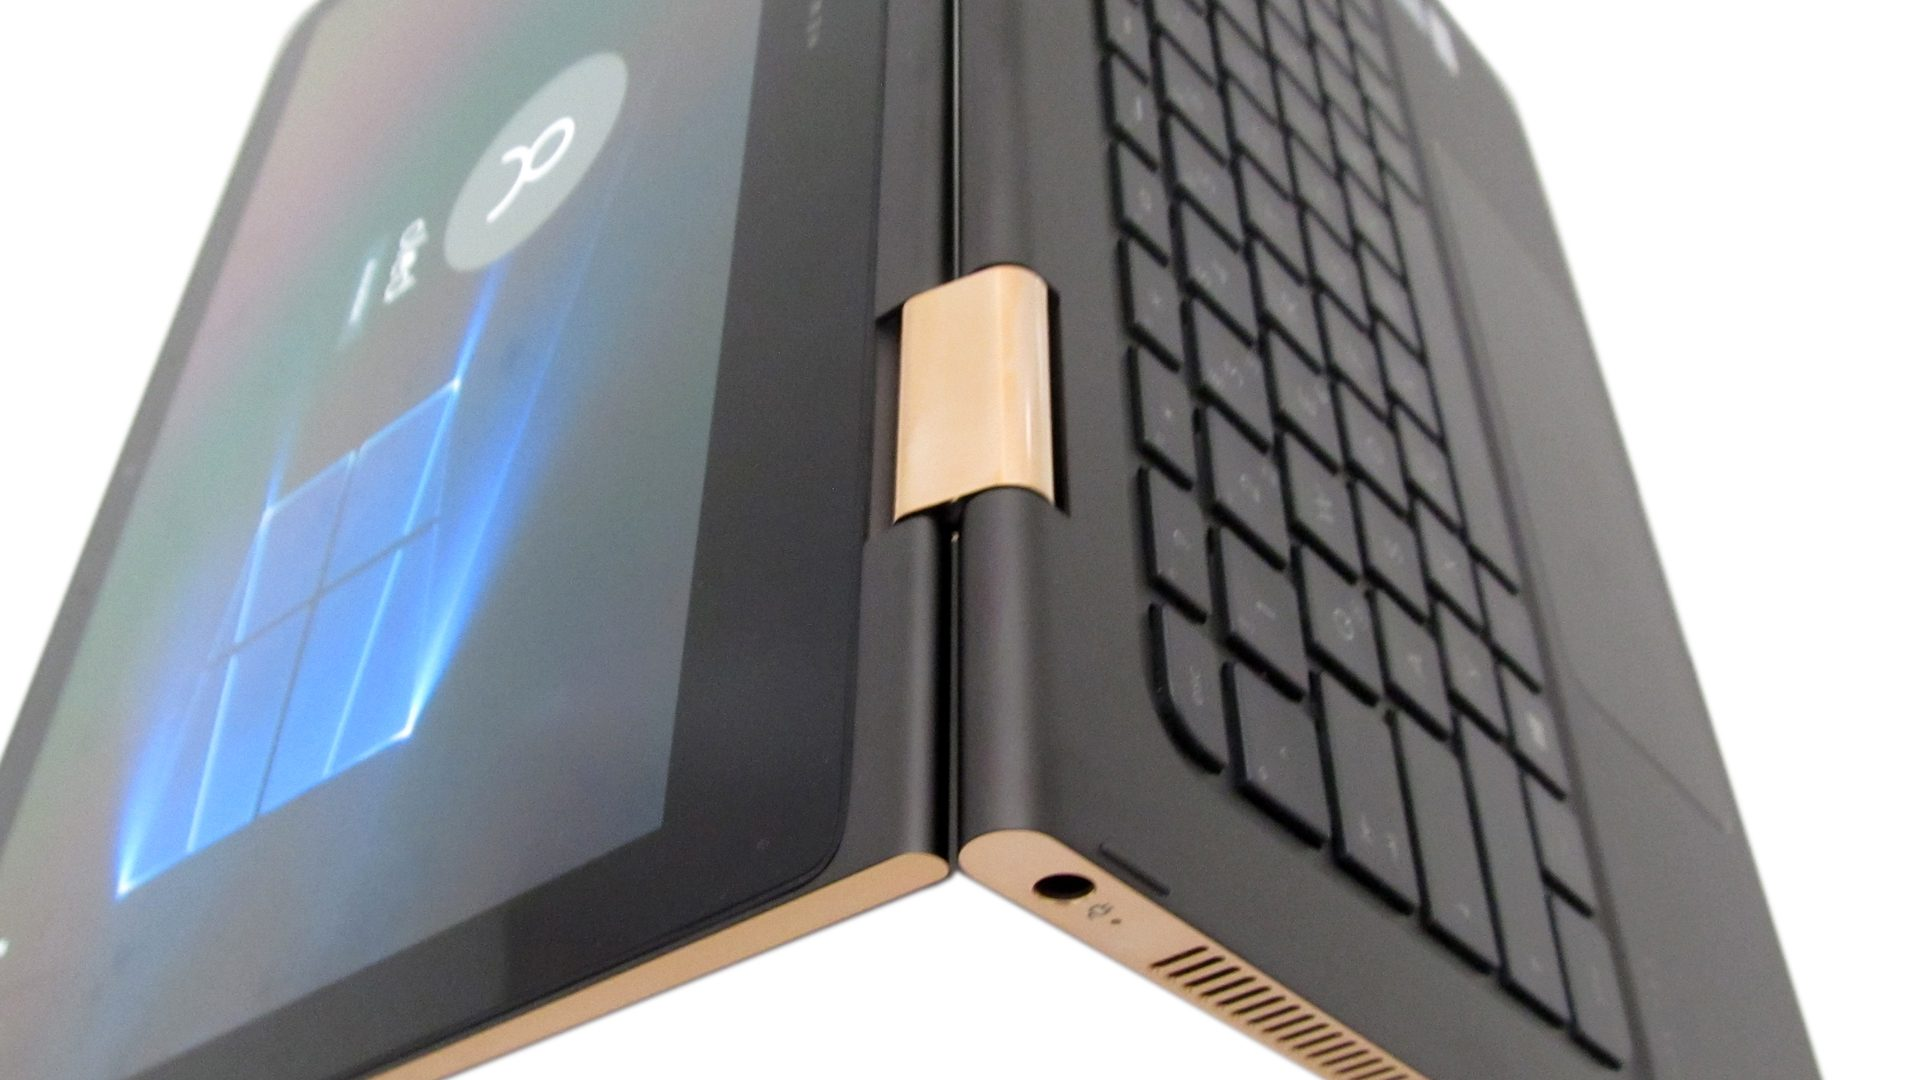 HP_Spectre_OLED-Displayscharnier_2